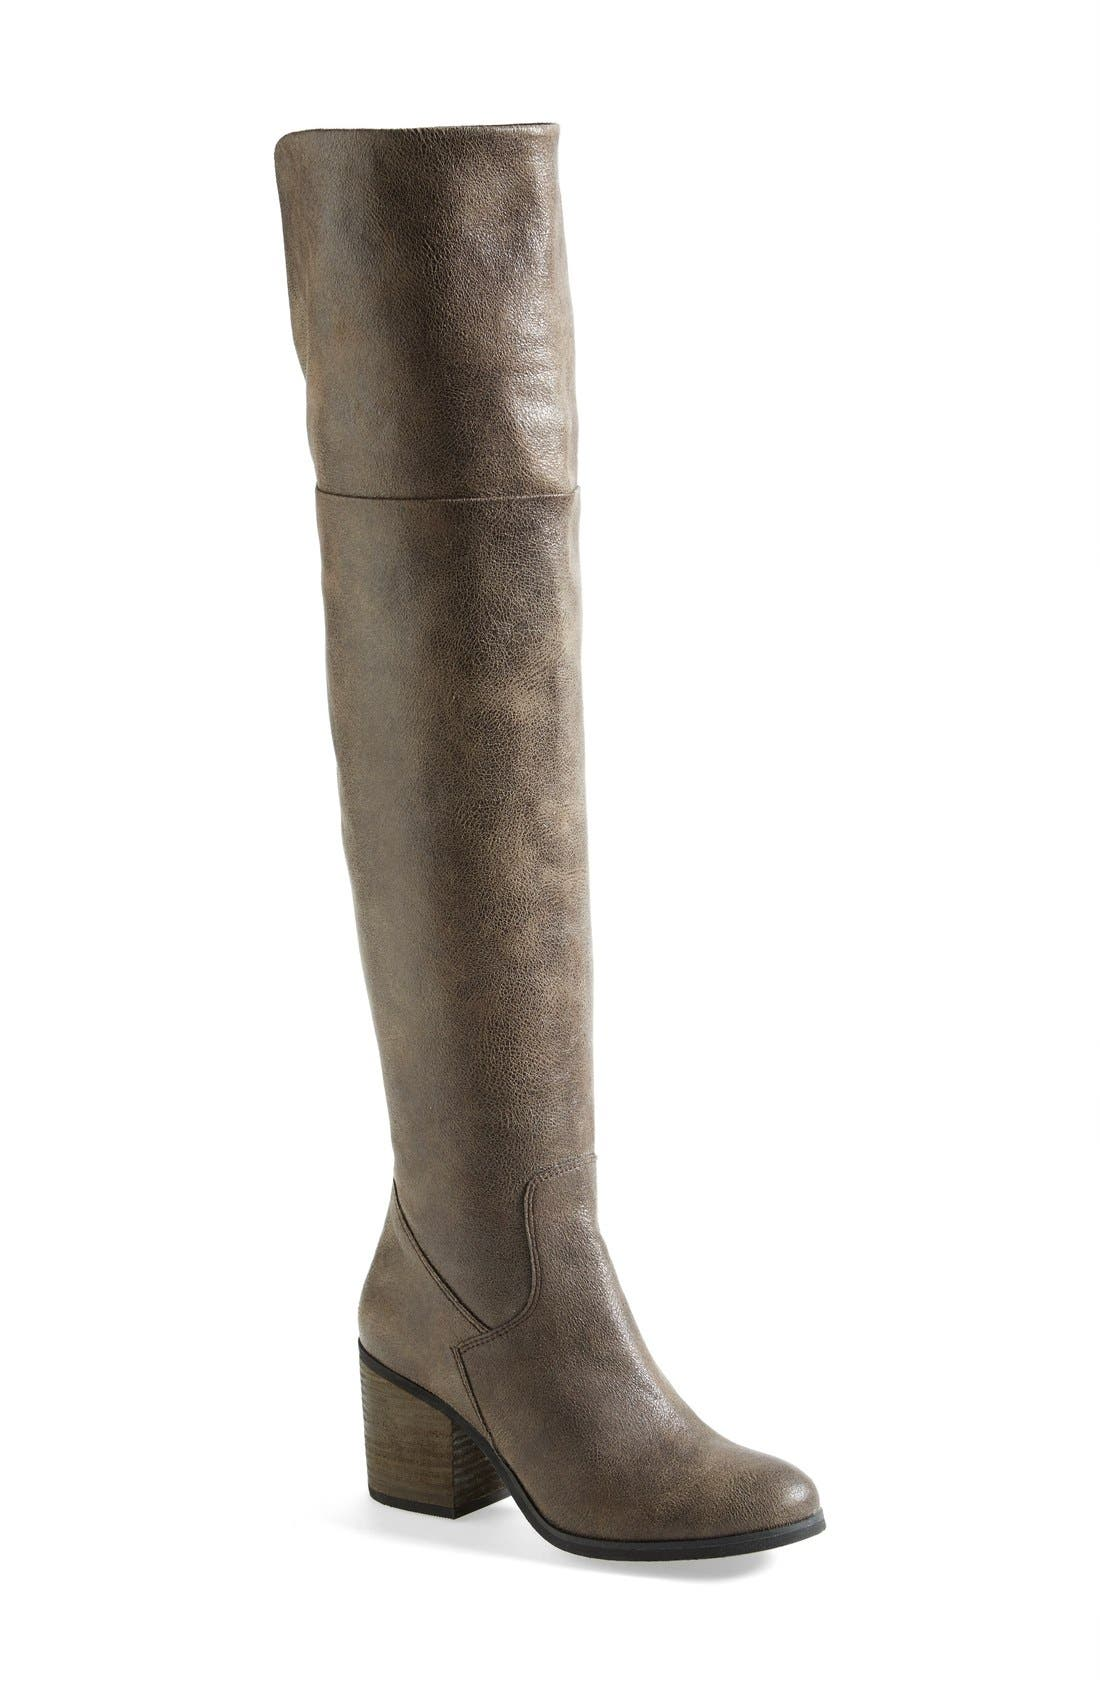 Main Image - Hinge Canton Over the Knee Boot (Women)